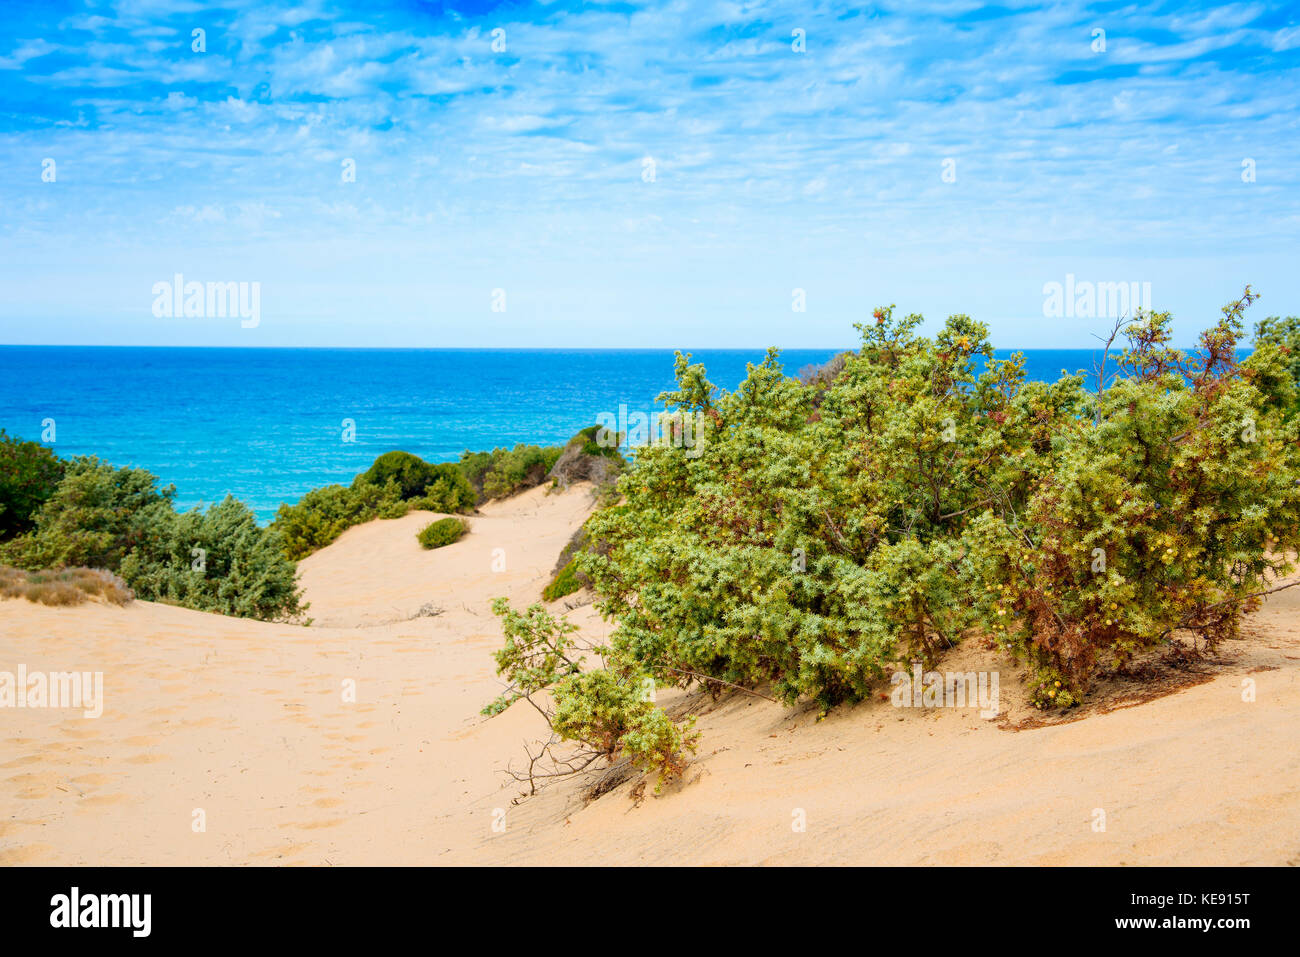 a view of the dunes of Piscinas in Sardinia, Italy, with the Mediterranean sea in the background - Stock Image